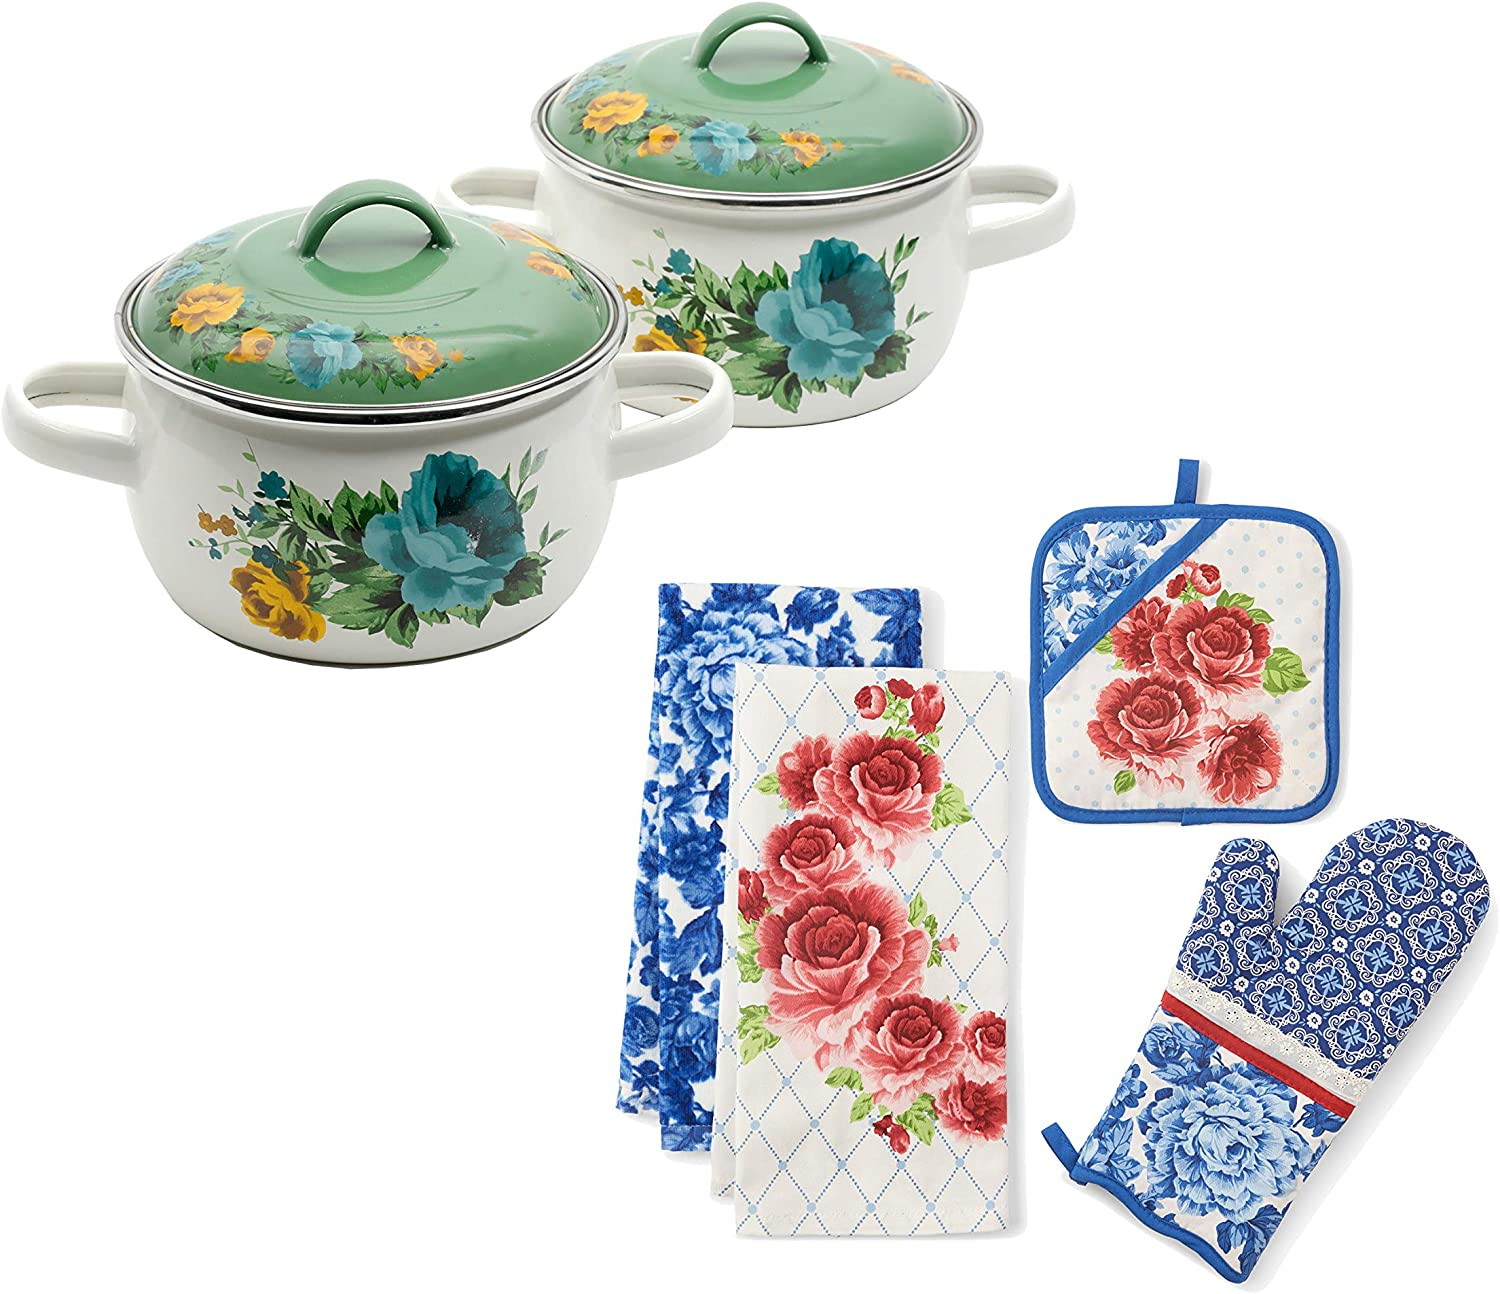 The Pioneer Woman 1-Quart Mini Dutch Ovens, Set of 2, Shadow Rose Mint bundle with The Pioneer Woman Heritage Floral Kitchen Towel, Oven Mitt, and Pot Holder, Set of 4